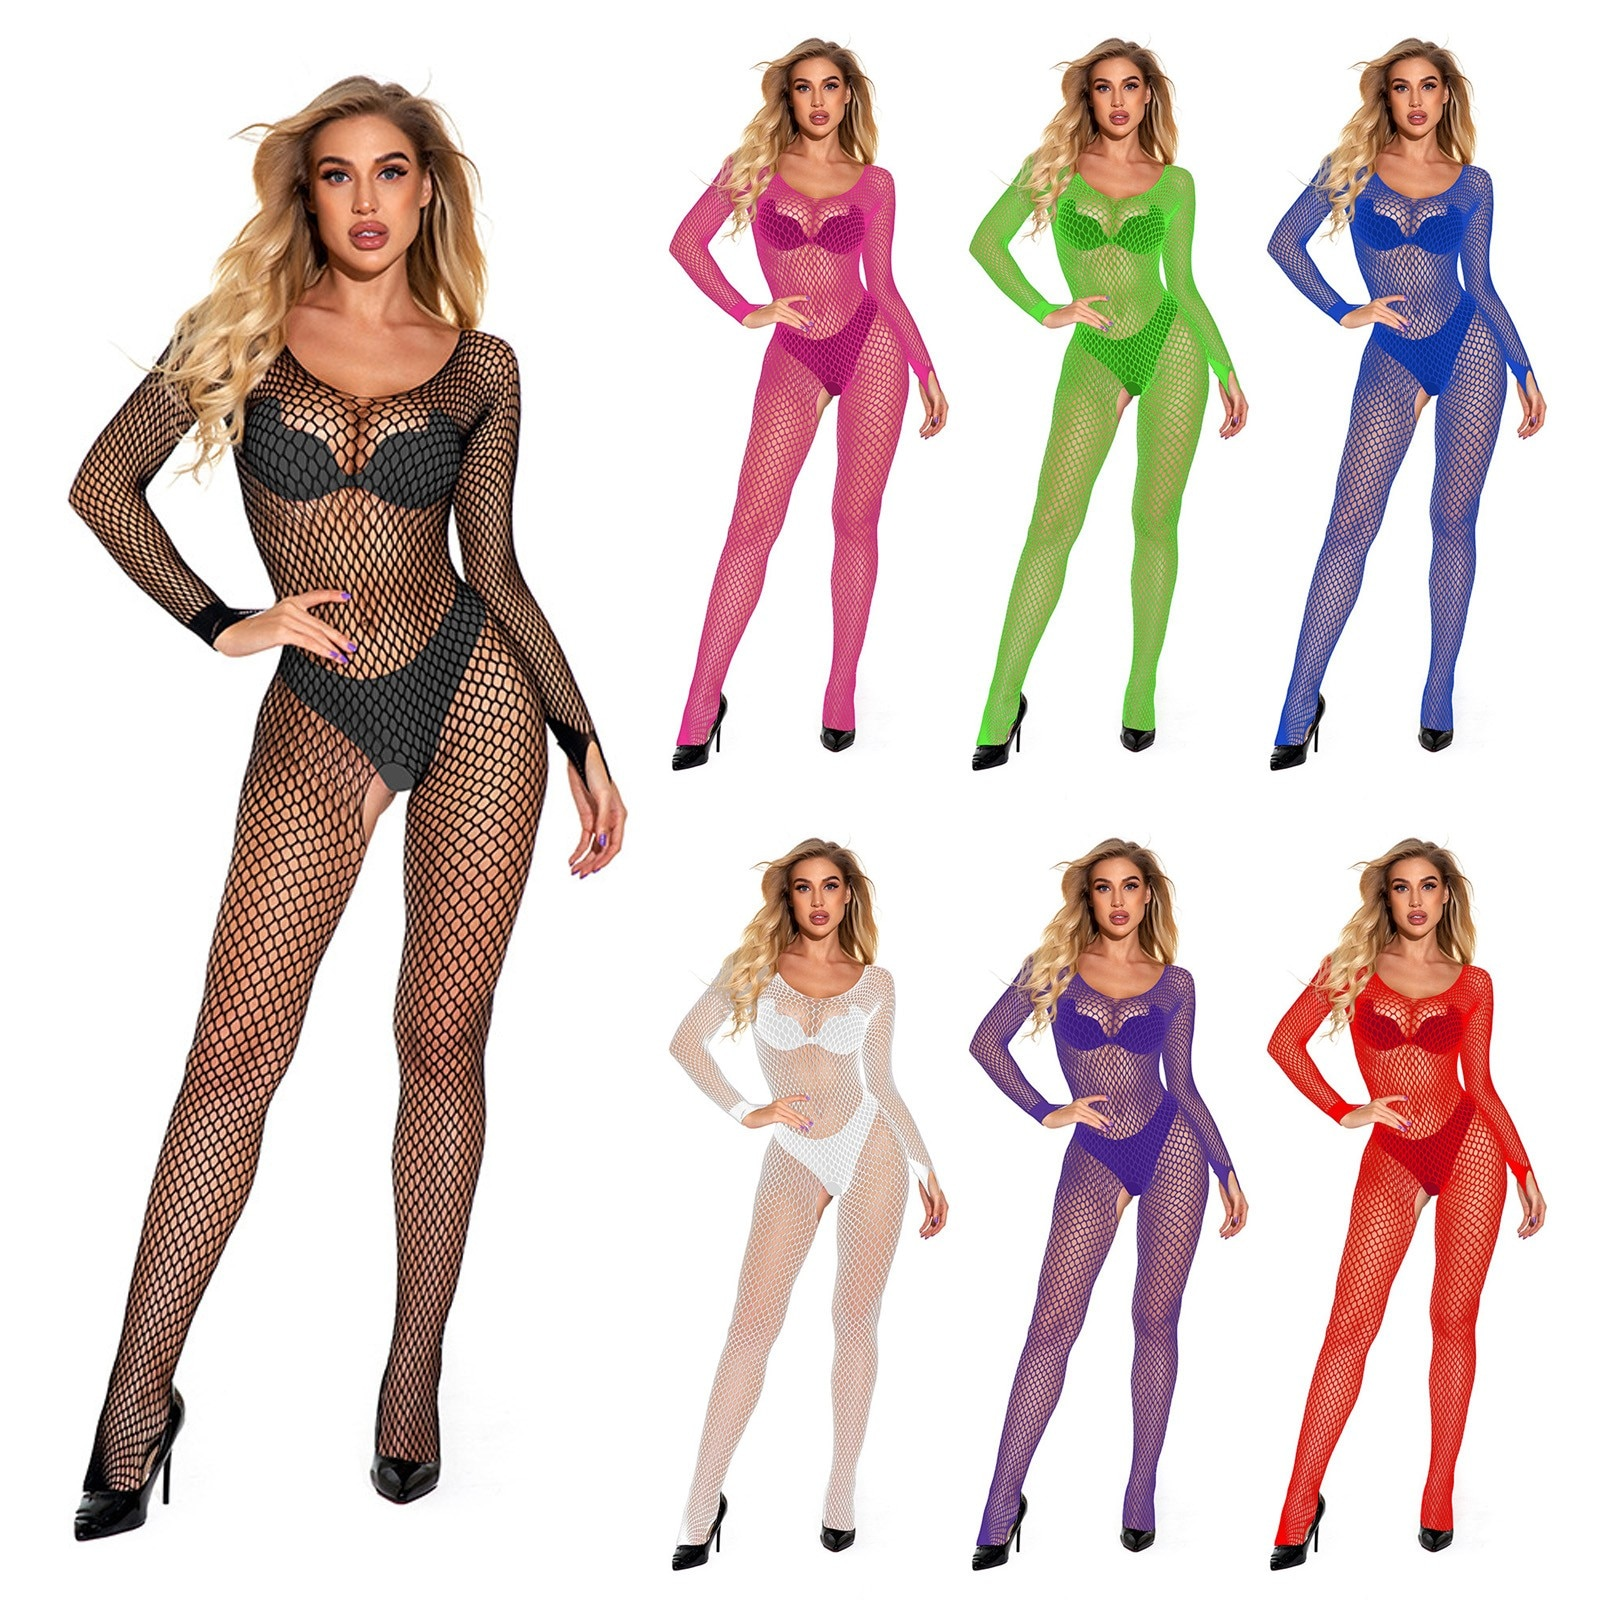 Sexy Bodystockings Women Fishnet Open Crotch Catsuit Mesh Tights Babydoll Lingerie Erotic Bodysuit S